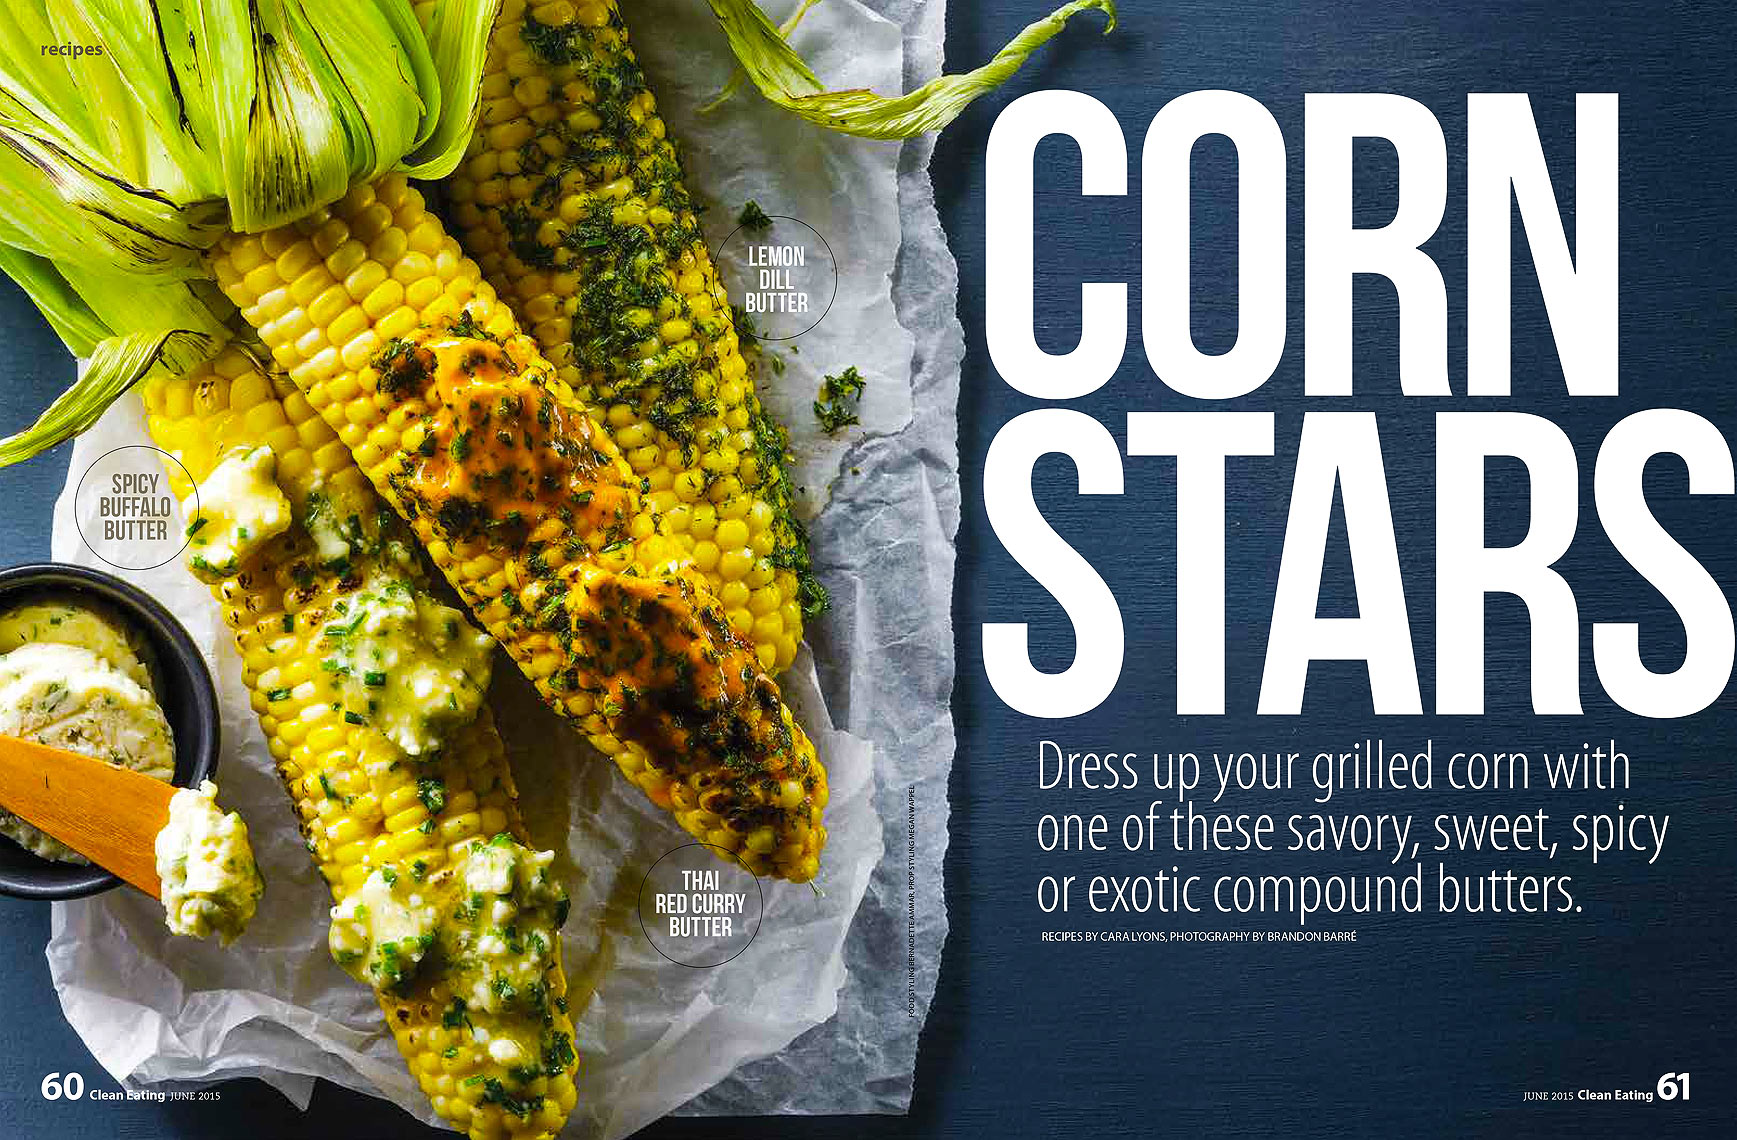 Clean_Eating_Magazine_Corn_On_The_Cob